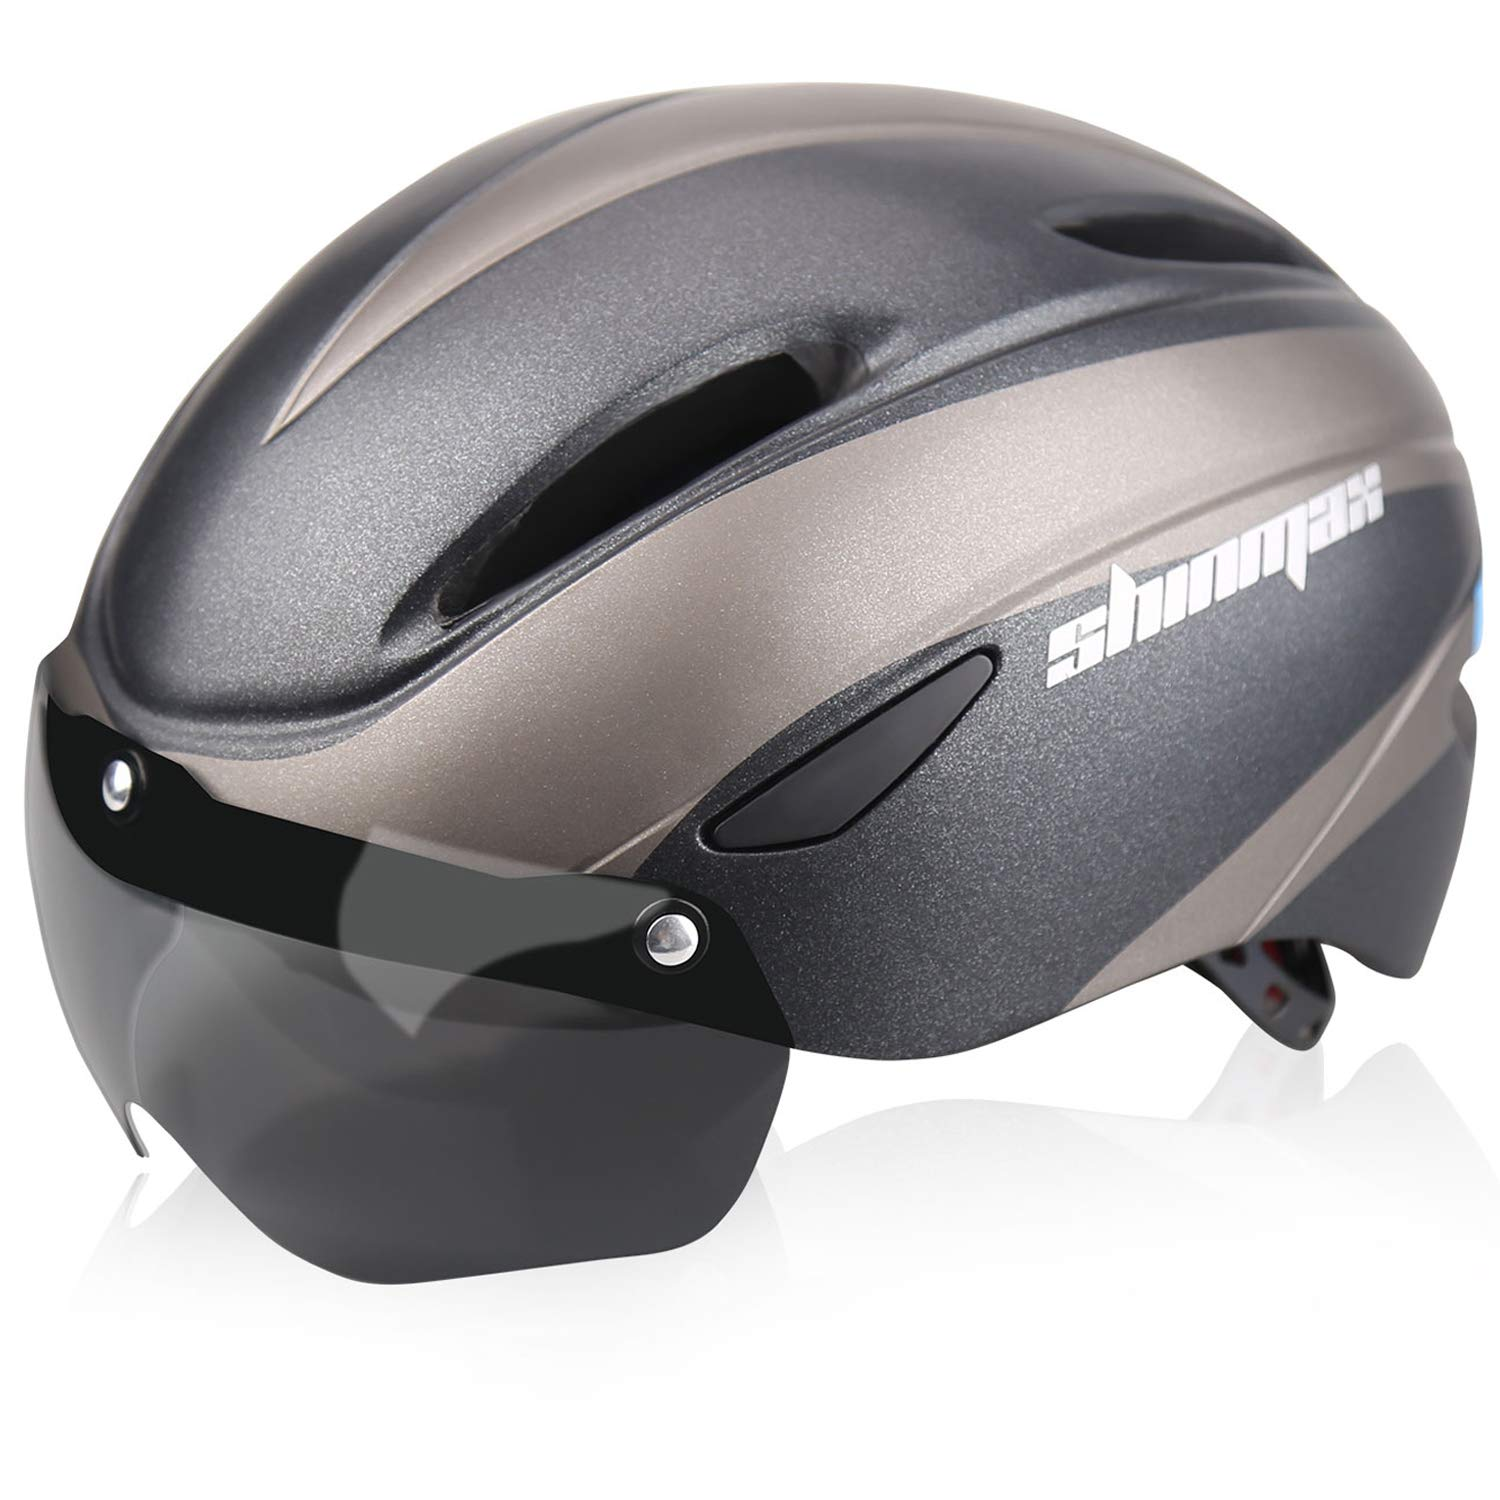 Shinmax Bike Helmet Bicycle Helmet CPSC/&CE Certified with USB Charging Rare Light/&Detachable Magnetic Goggles/&Carrying Bag Adjustable Cycling Helmet for Adult Road//Biking//Mountain//Urban Commuter